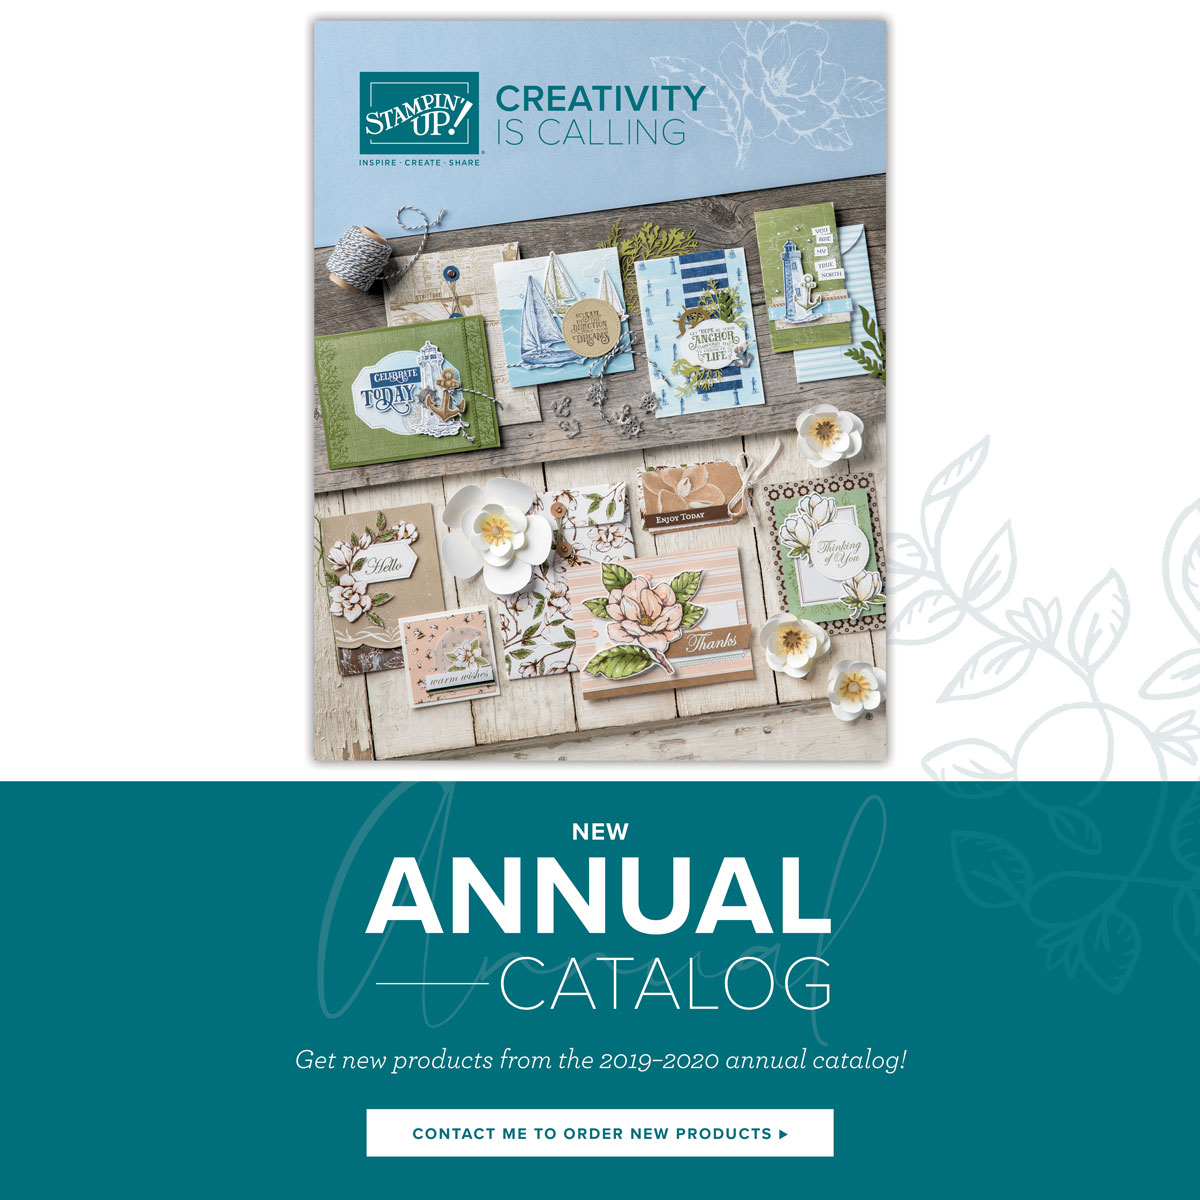 New annual Catalog Launches TODAY